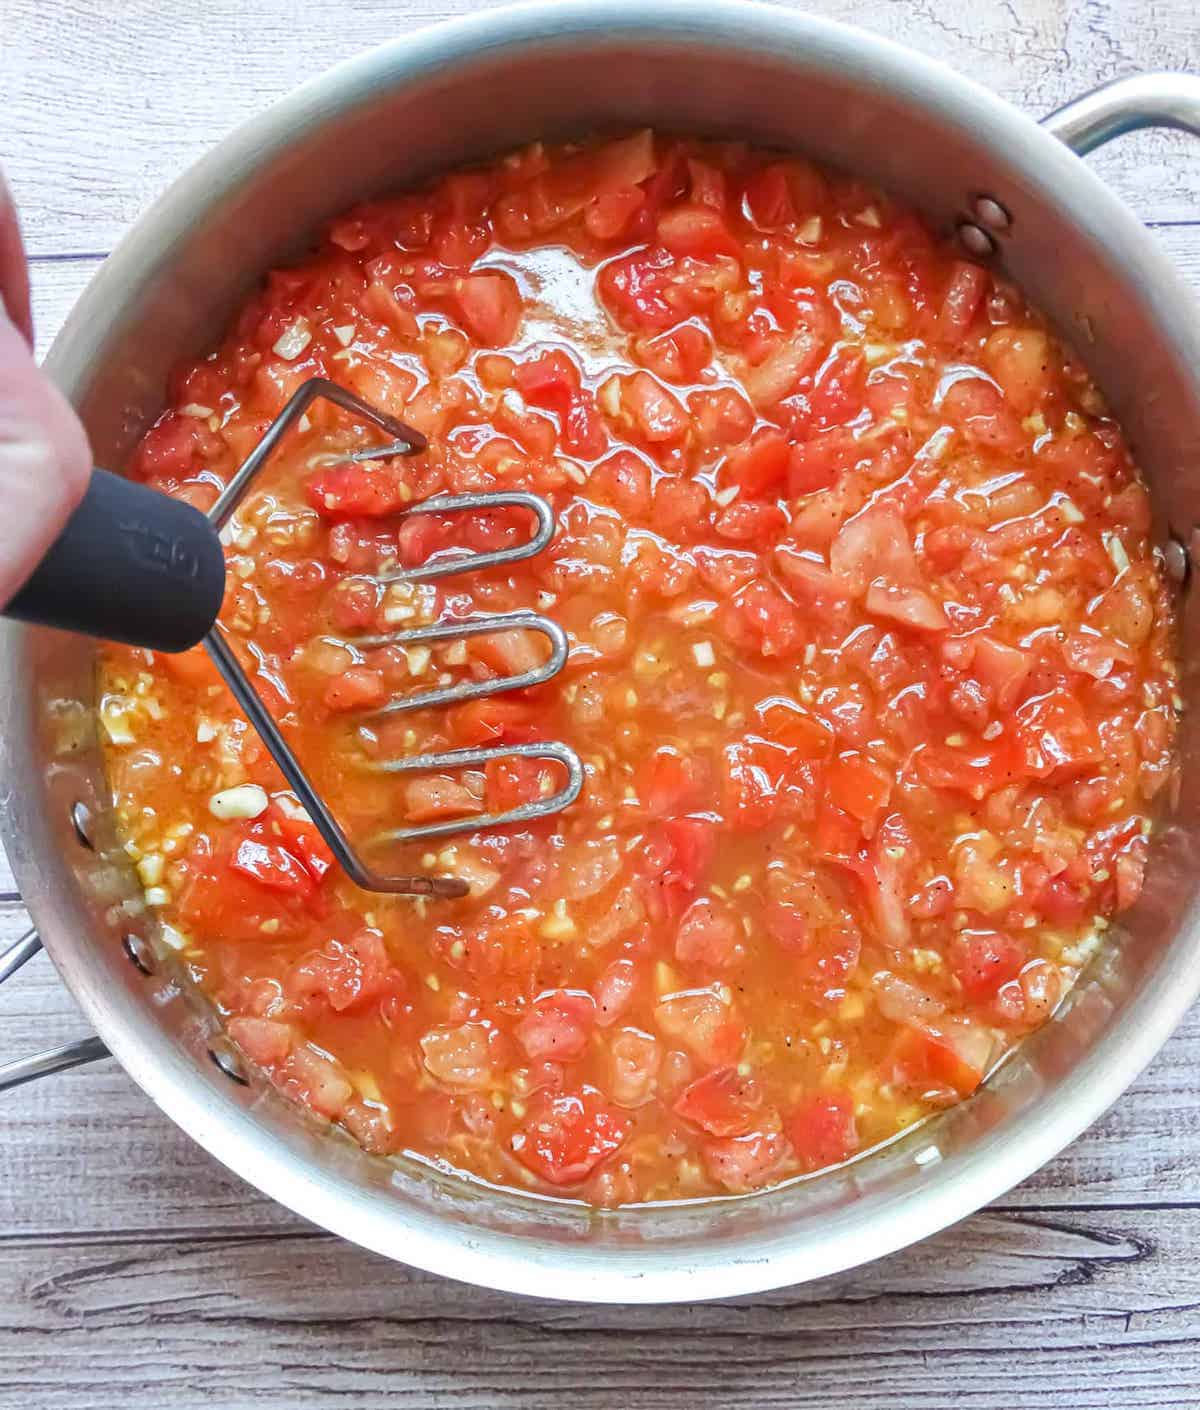 tomatoes and garlic crushed in a pan